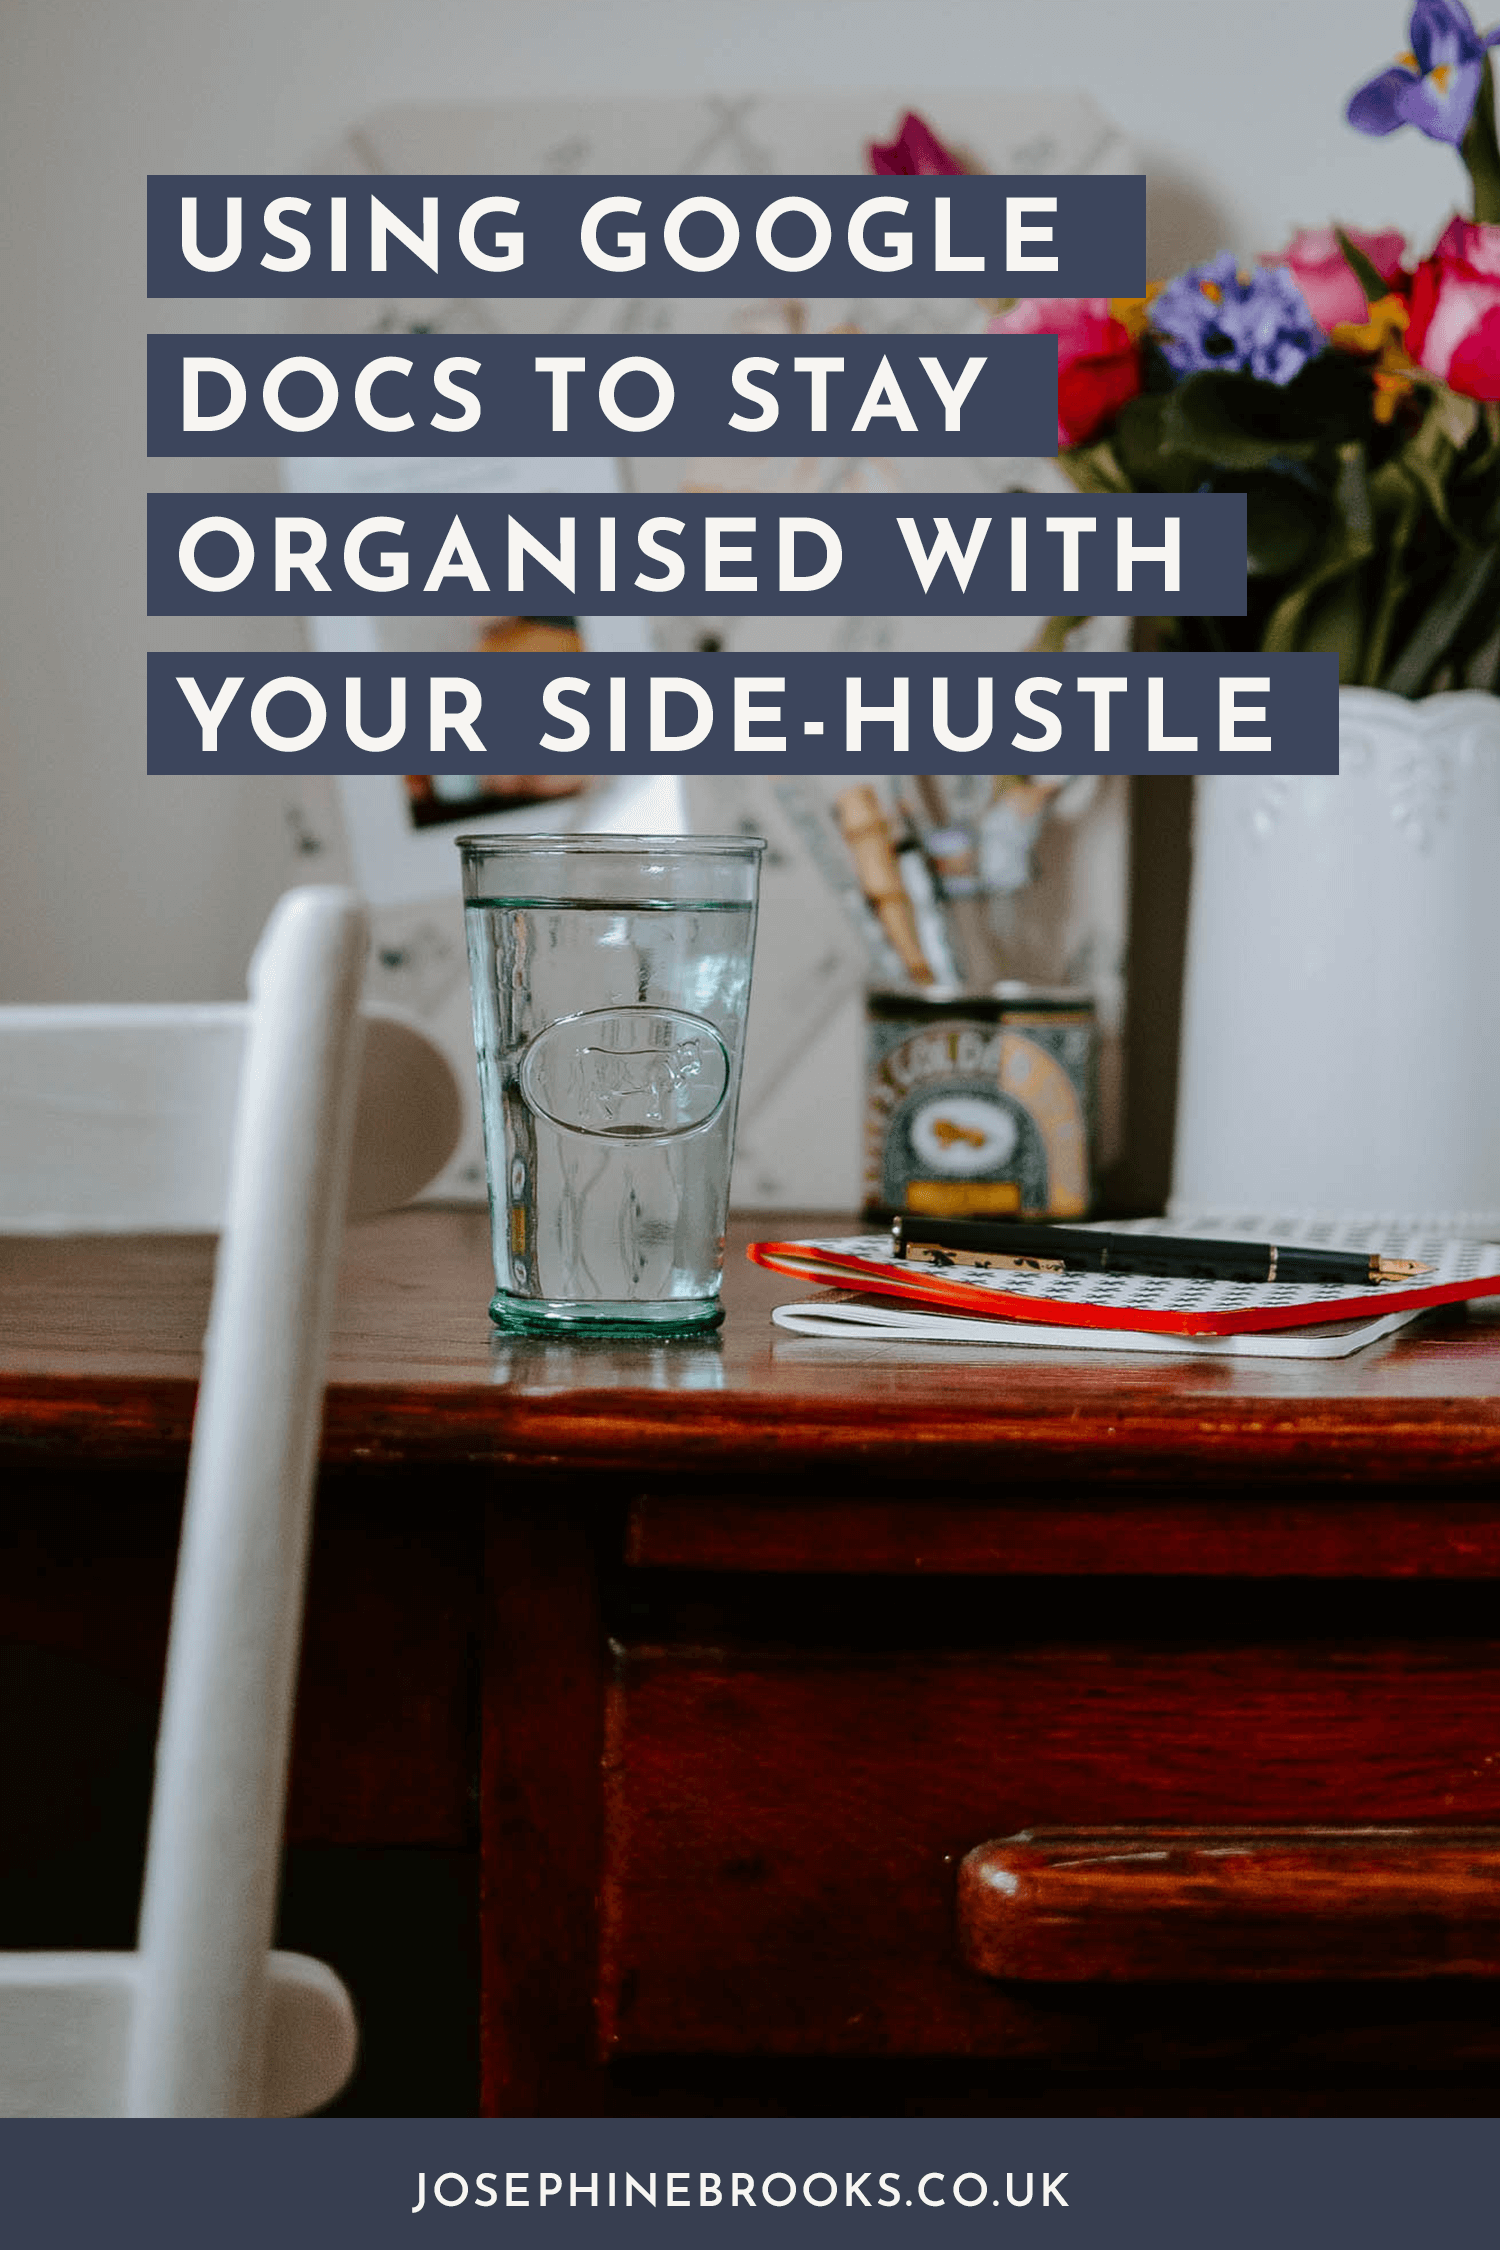 Using Google docs to stay organised in your side-hustle, Getting organised in your side business, How to use google docs for creative business, Google docs tips for creatives, How to use google docs, Creative business google docs   Josephine Brooks